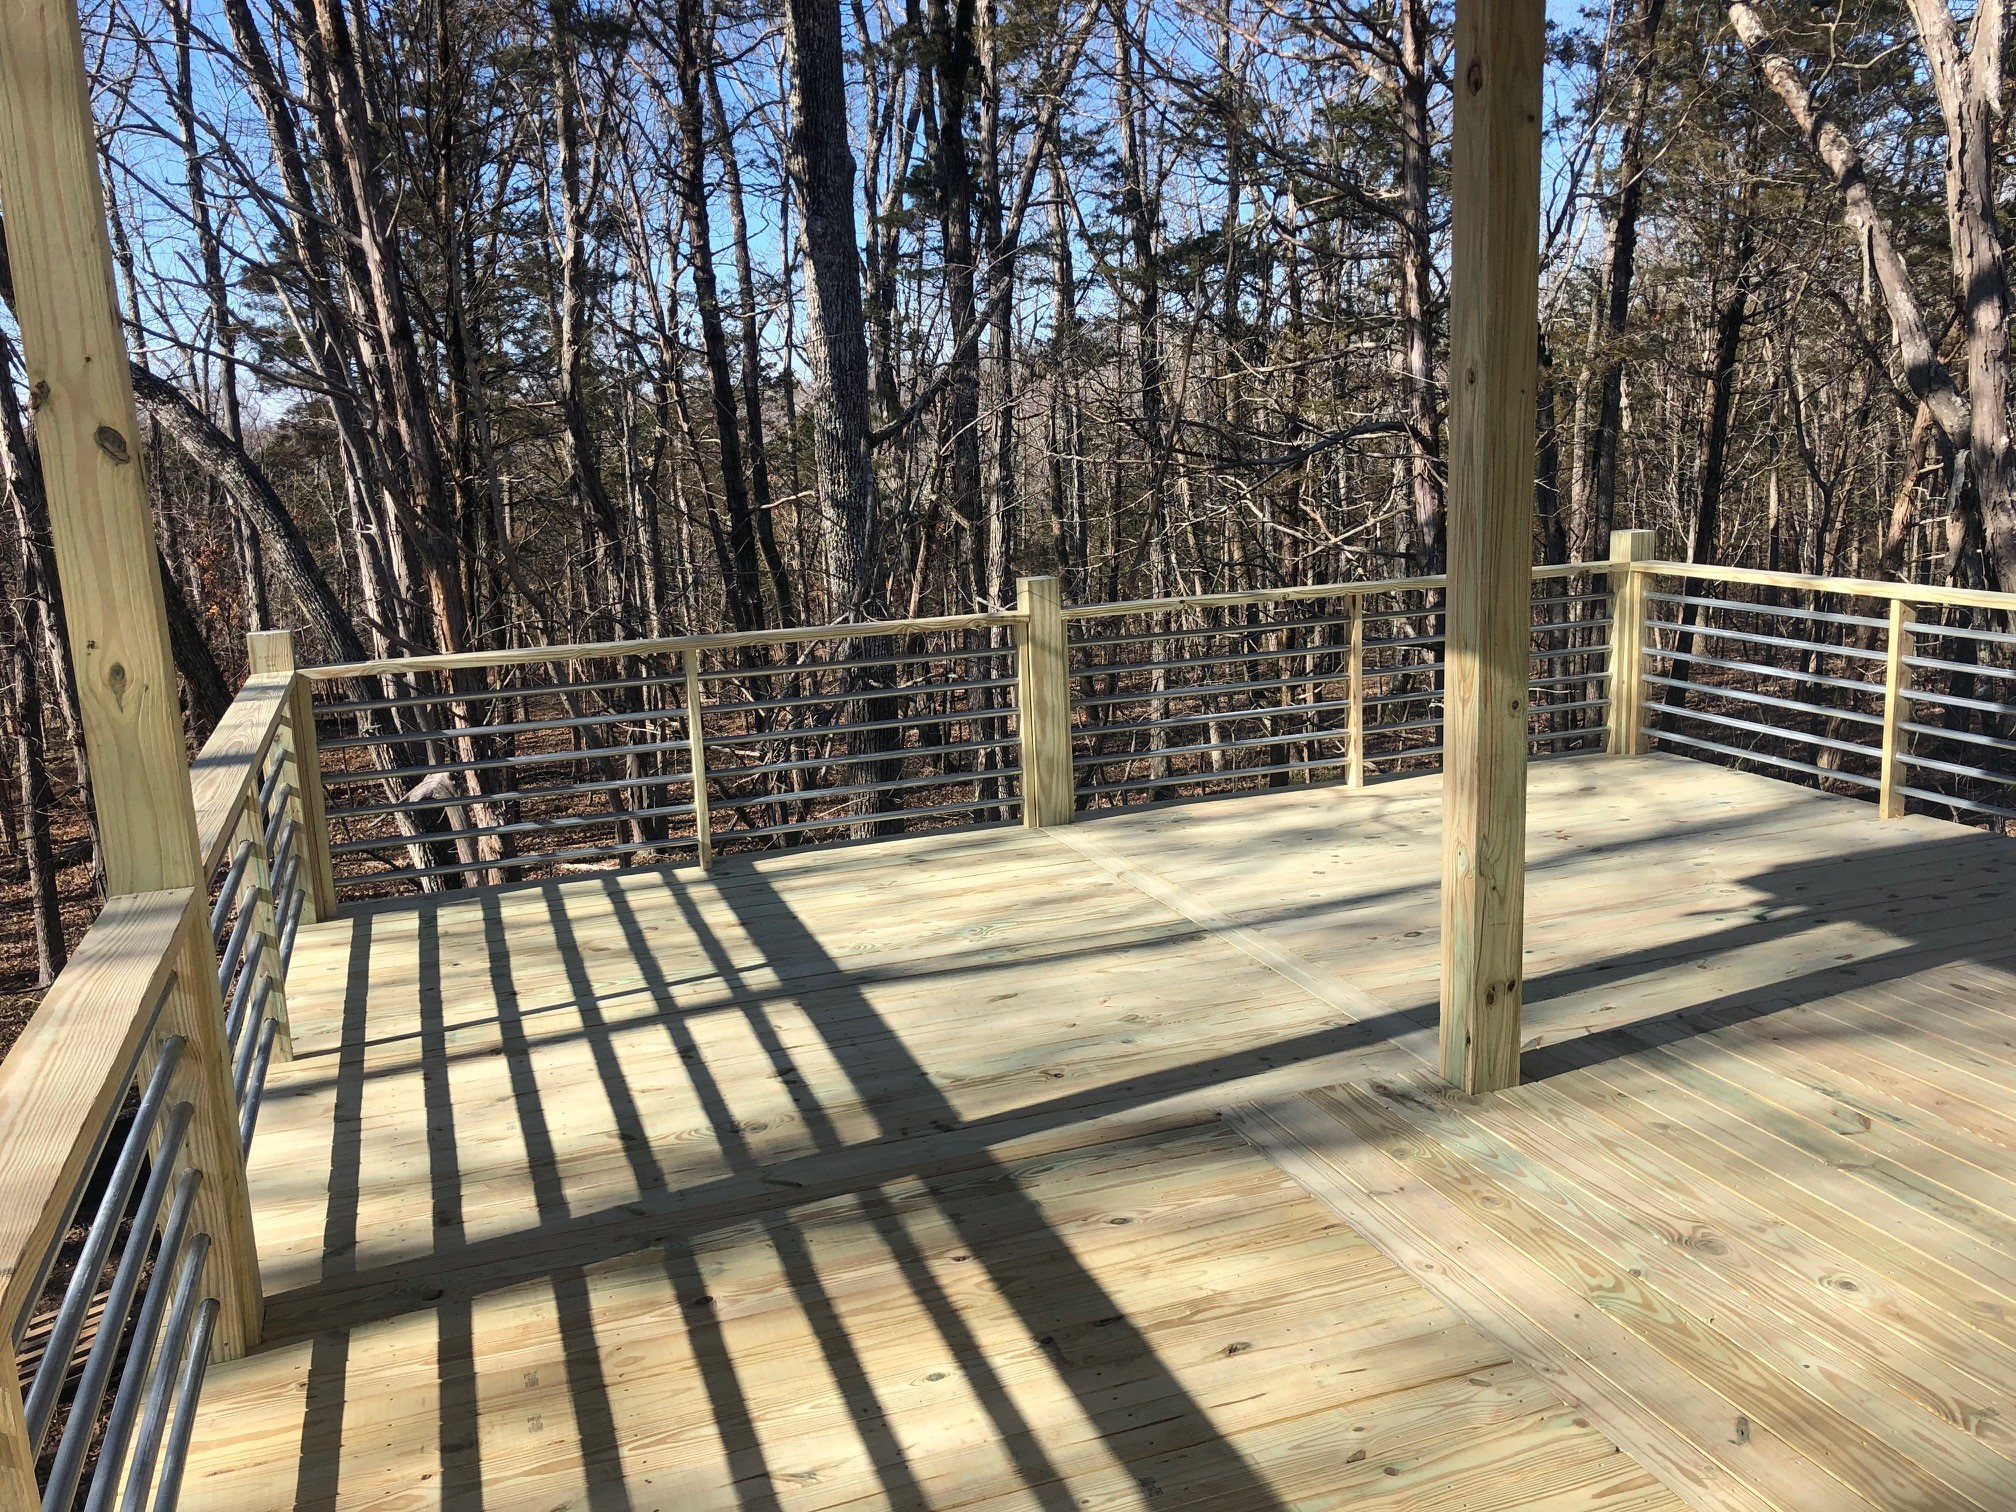 New Construction House Deck and Galvanized Horizontal Rails